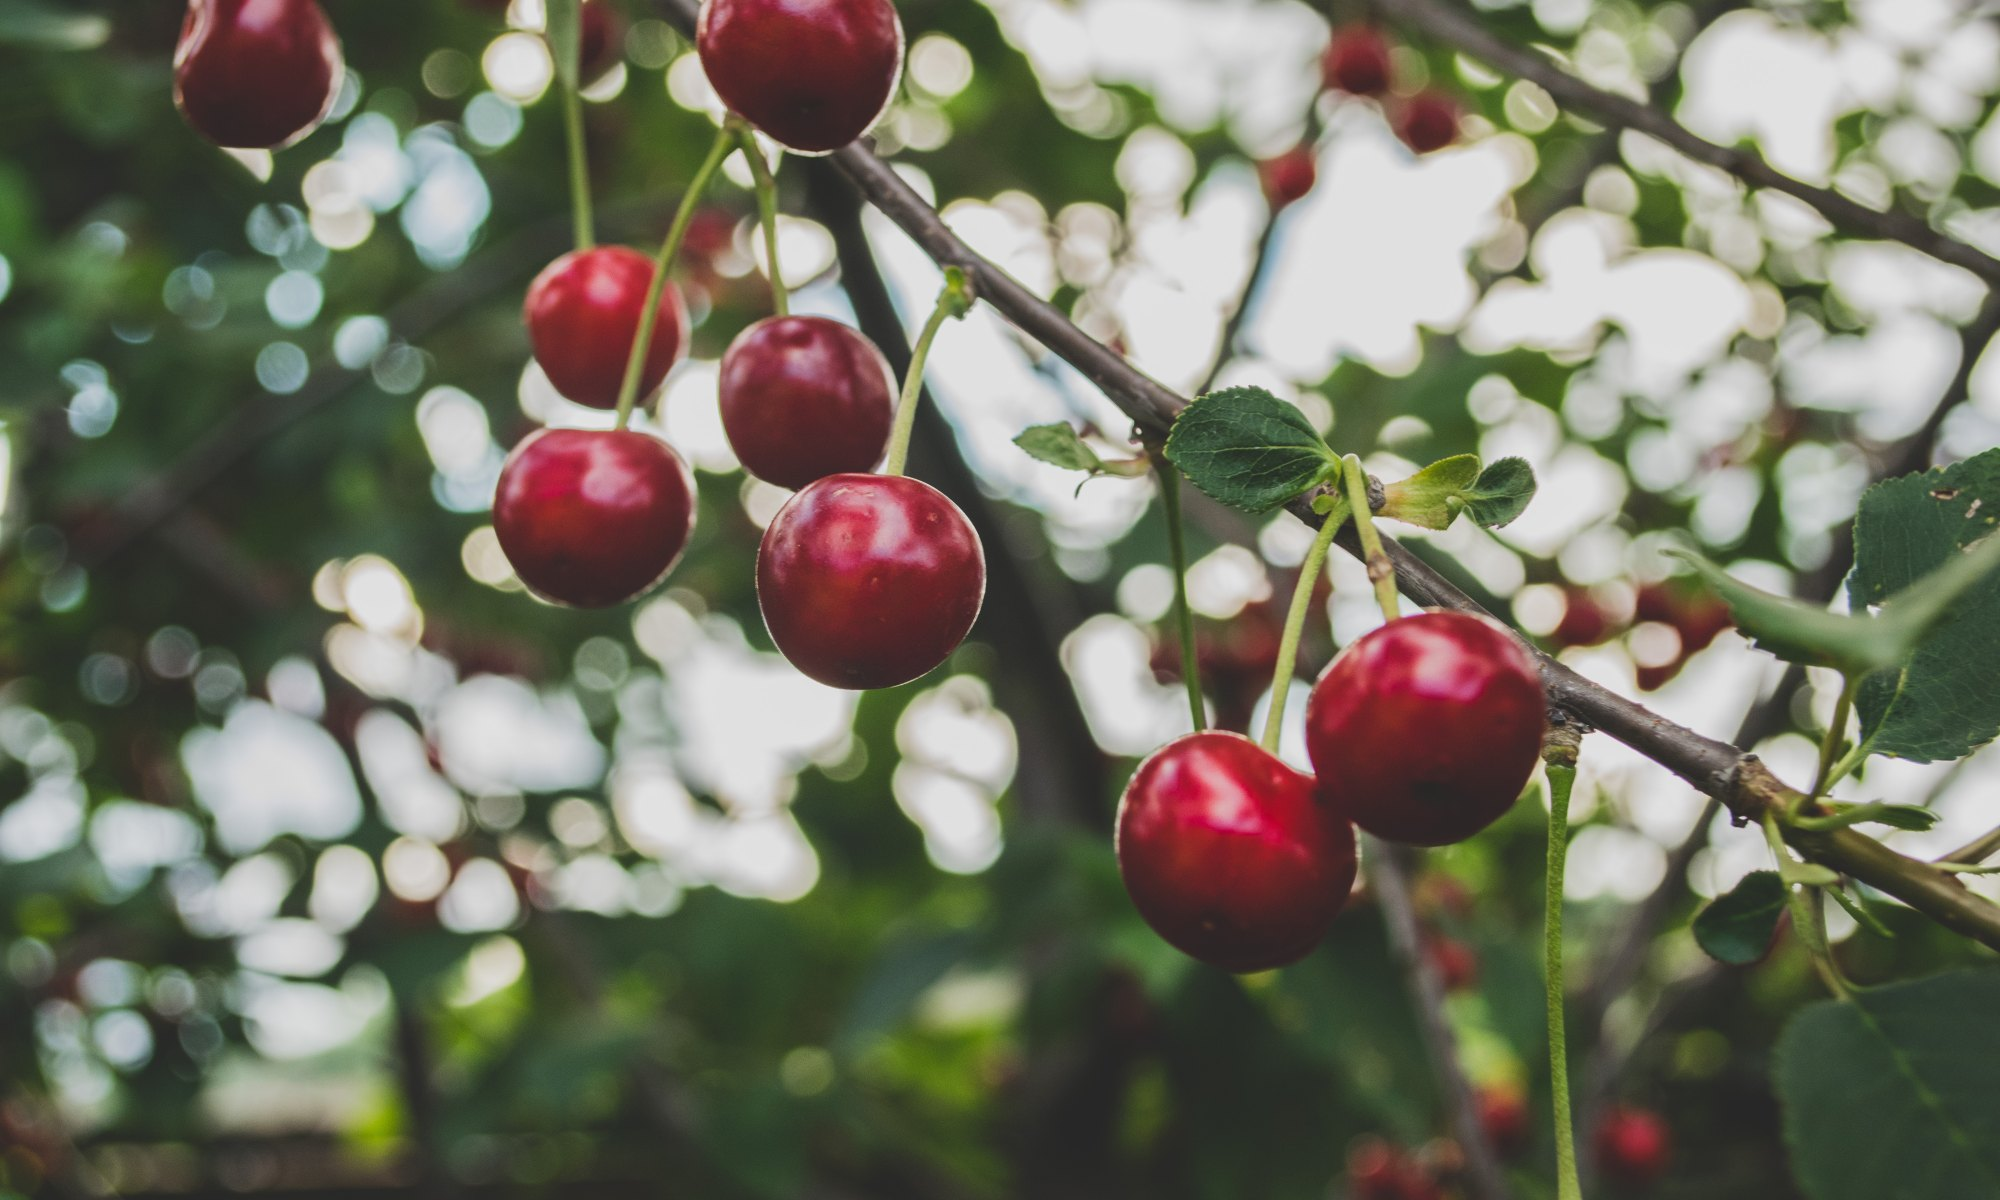 Red cherries growing on a tree